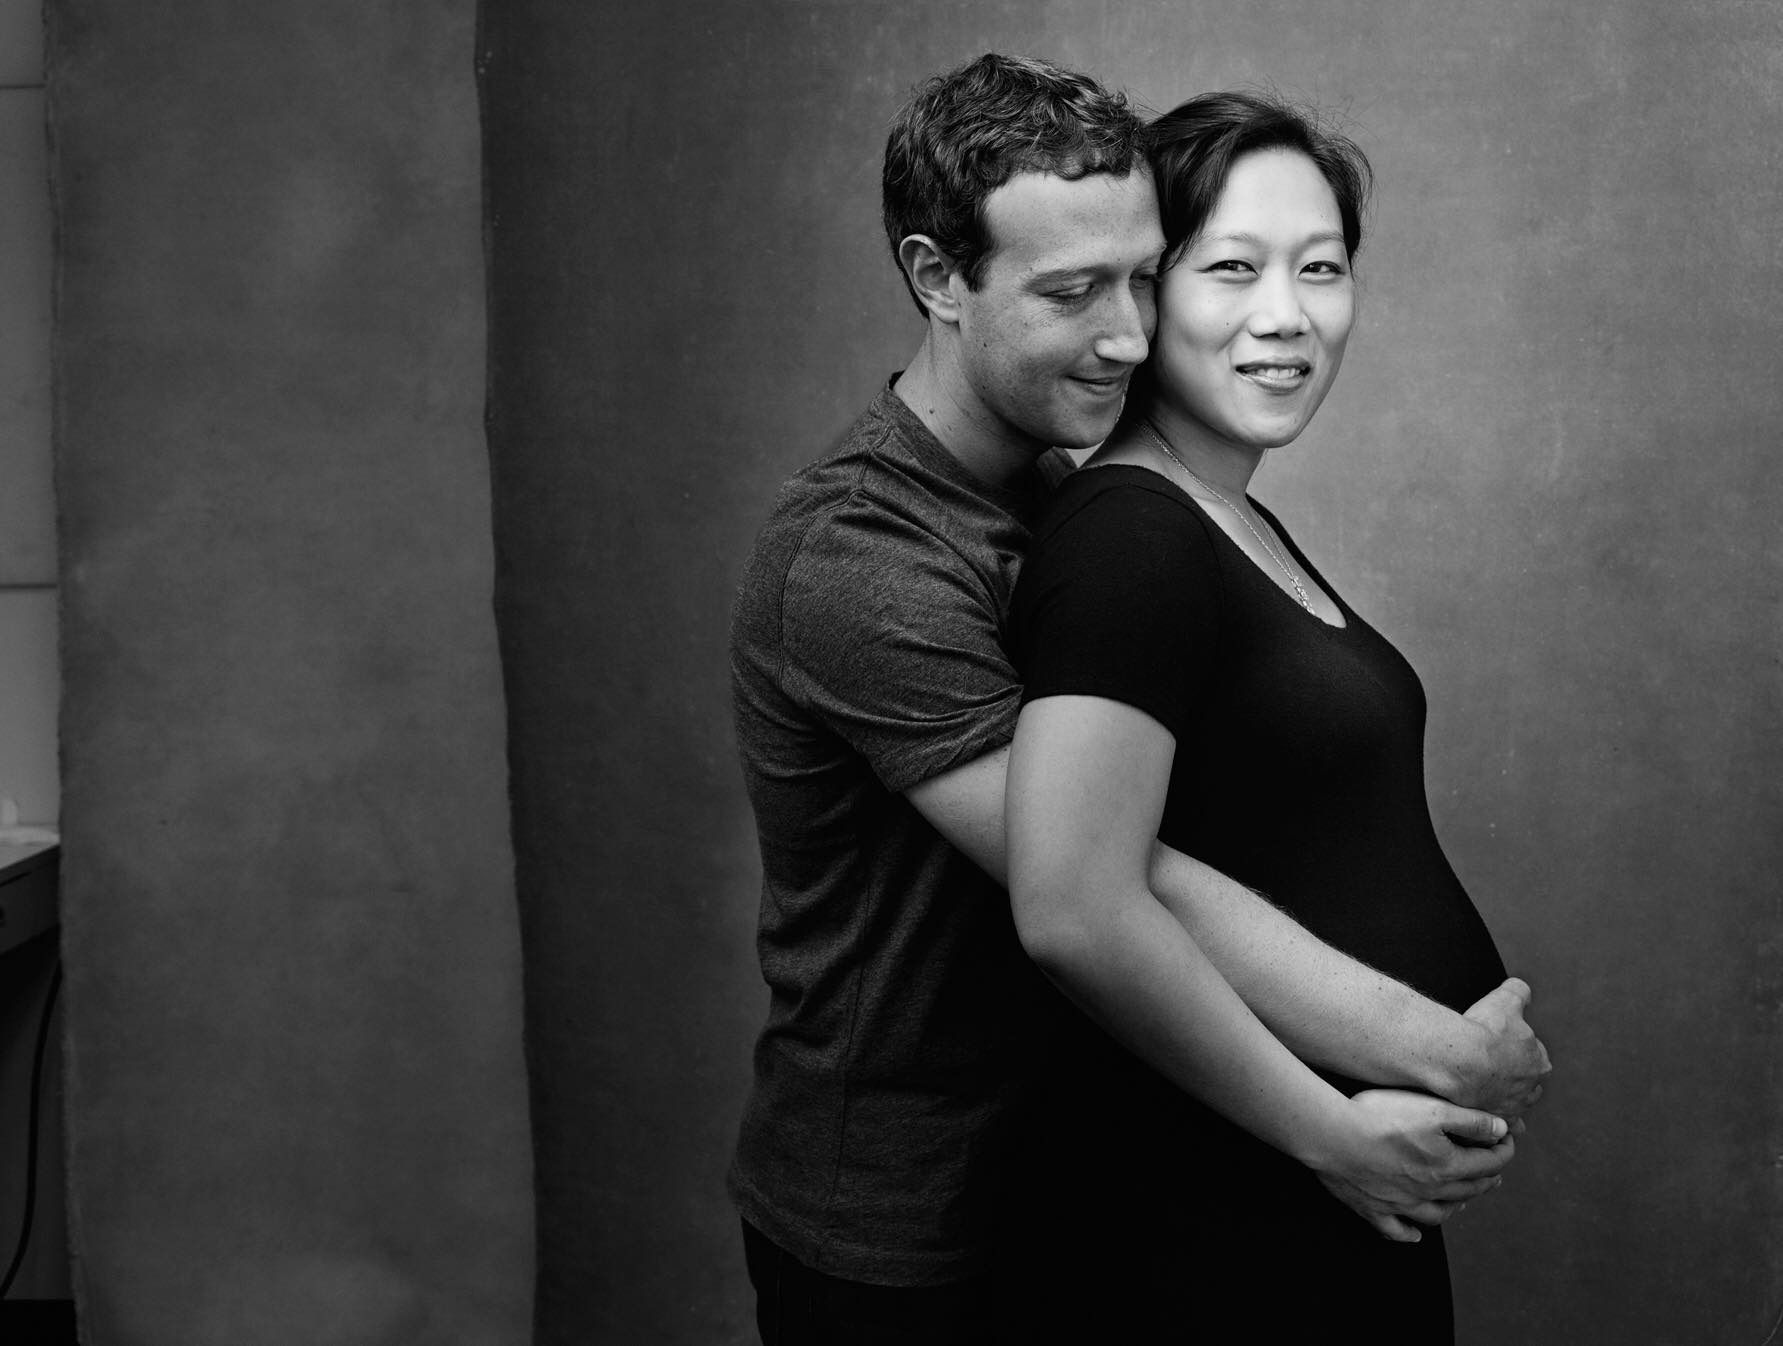 Mark zuckerberg shares adorable annie leibovitz photo of pregnant